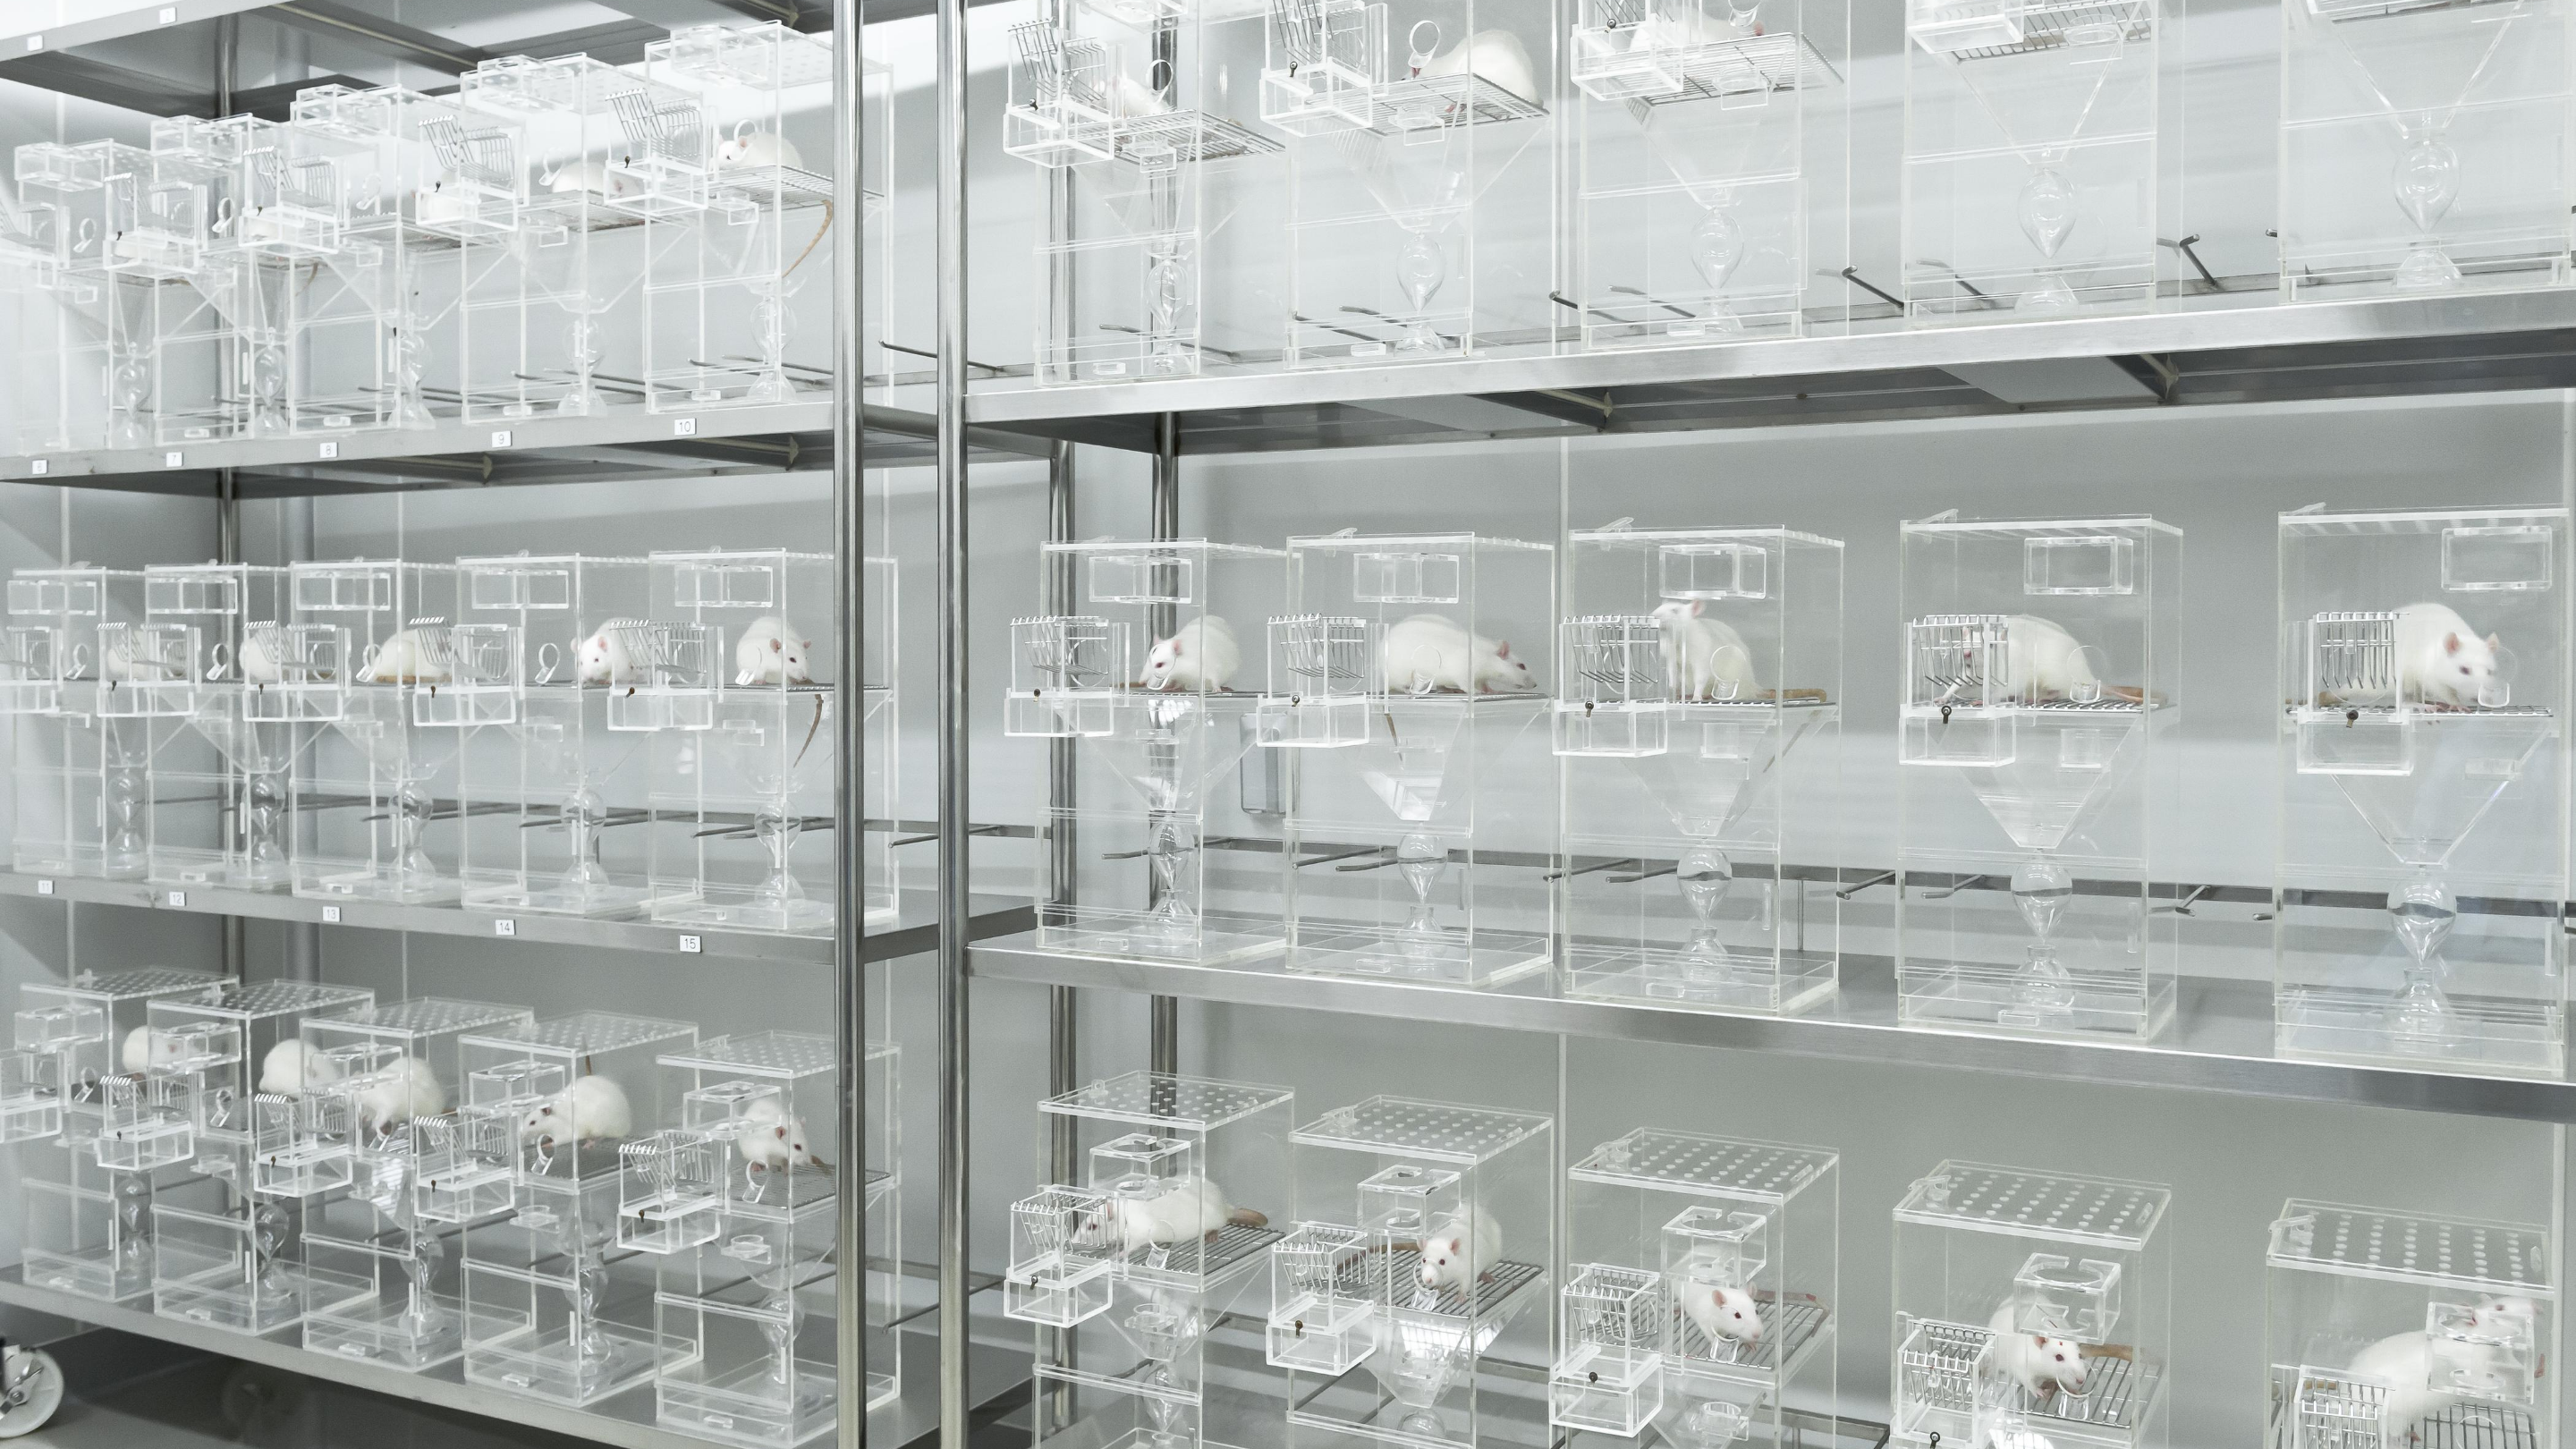 Shelves hold rows and rows of white rats in small, clear plastic cages